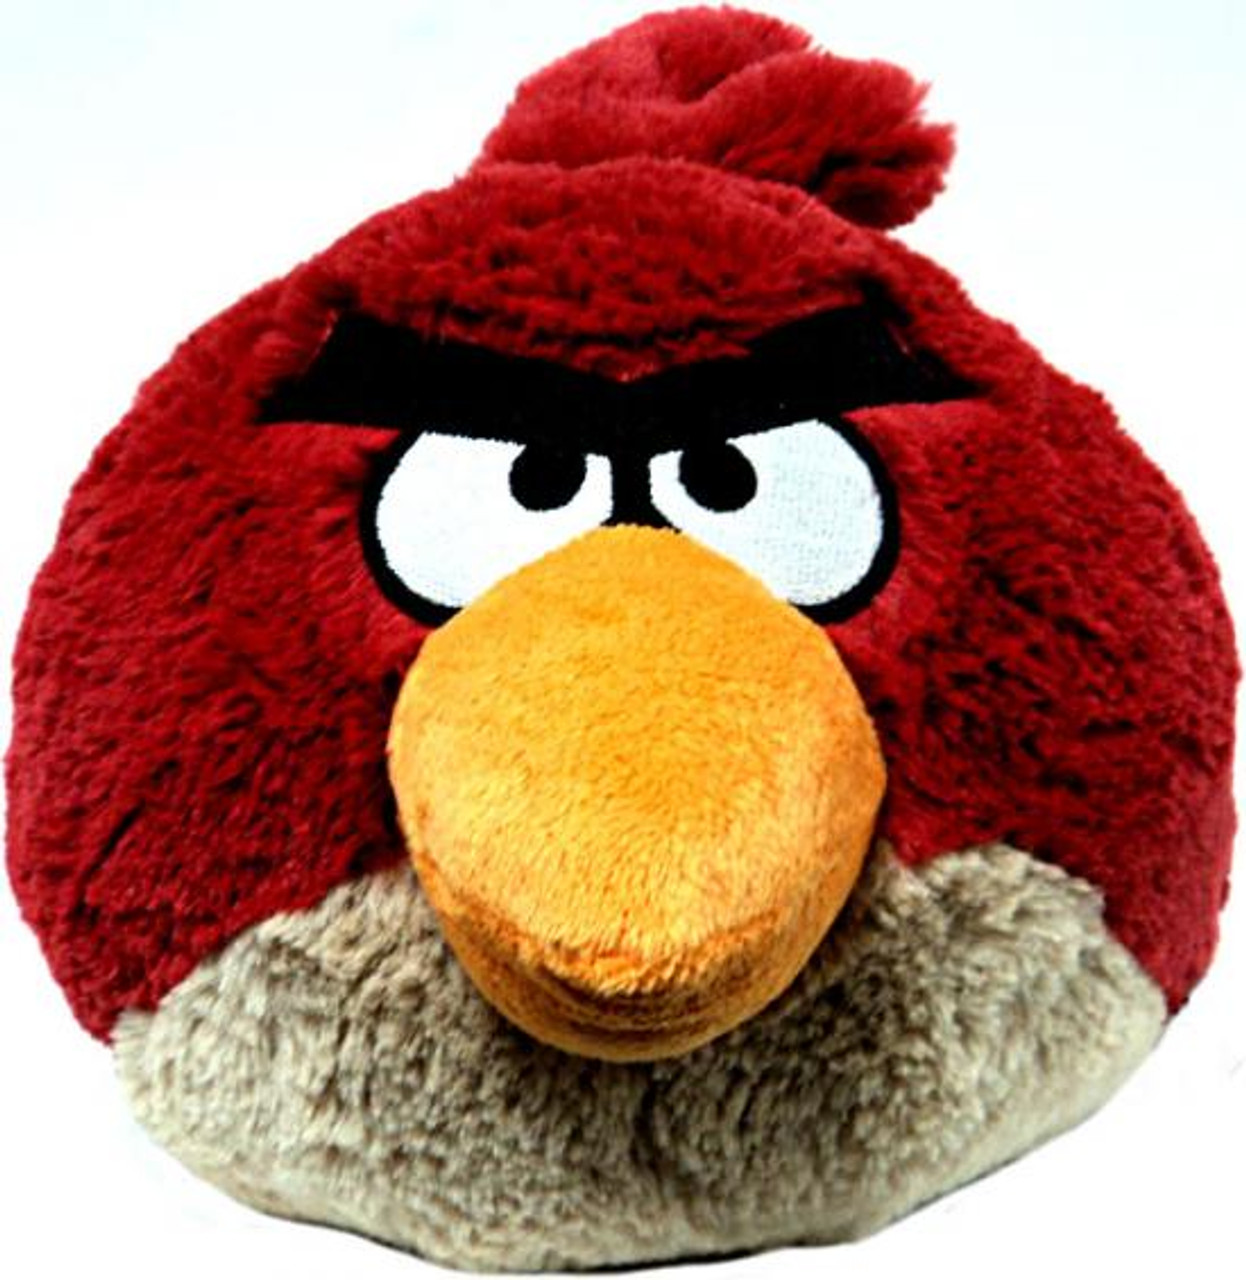 Angry Birds Red Bird 8-Inch Plush [With Sound]